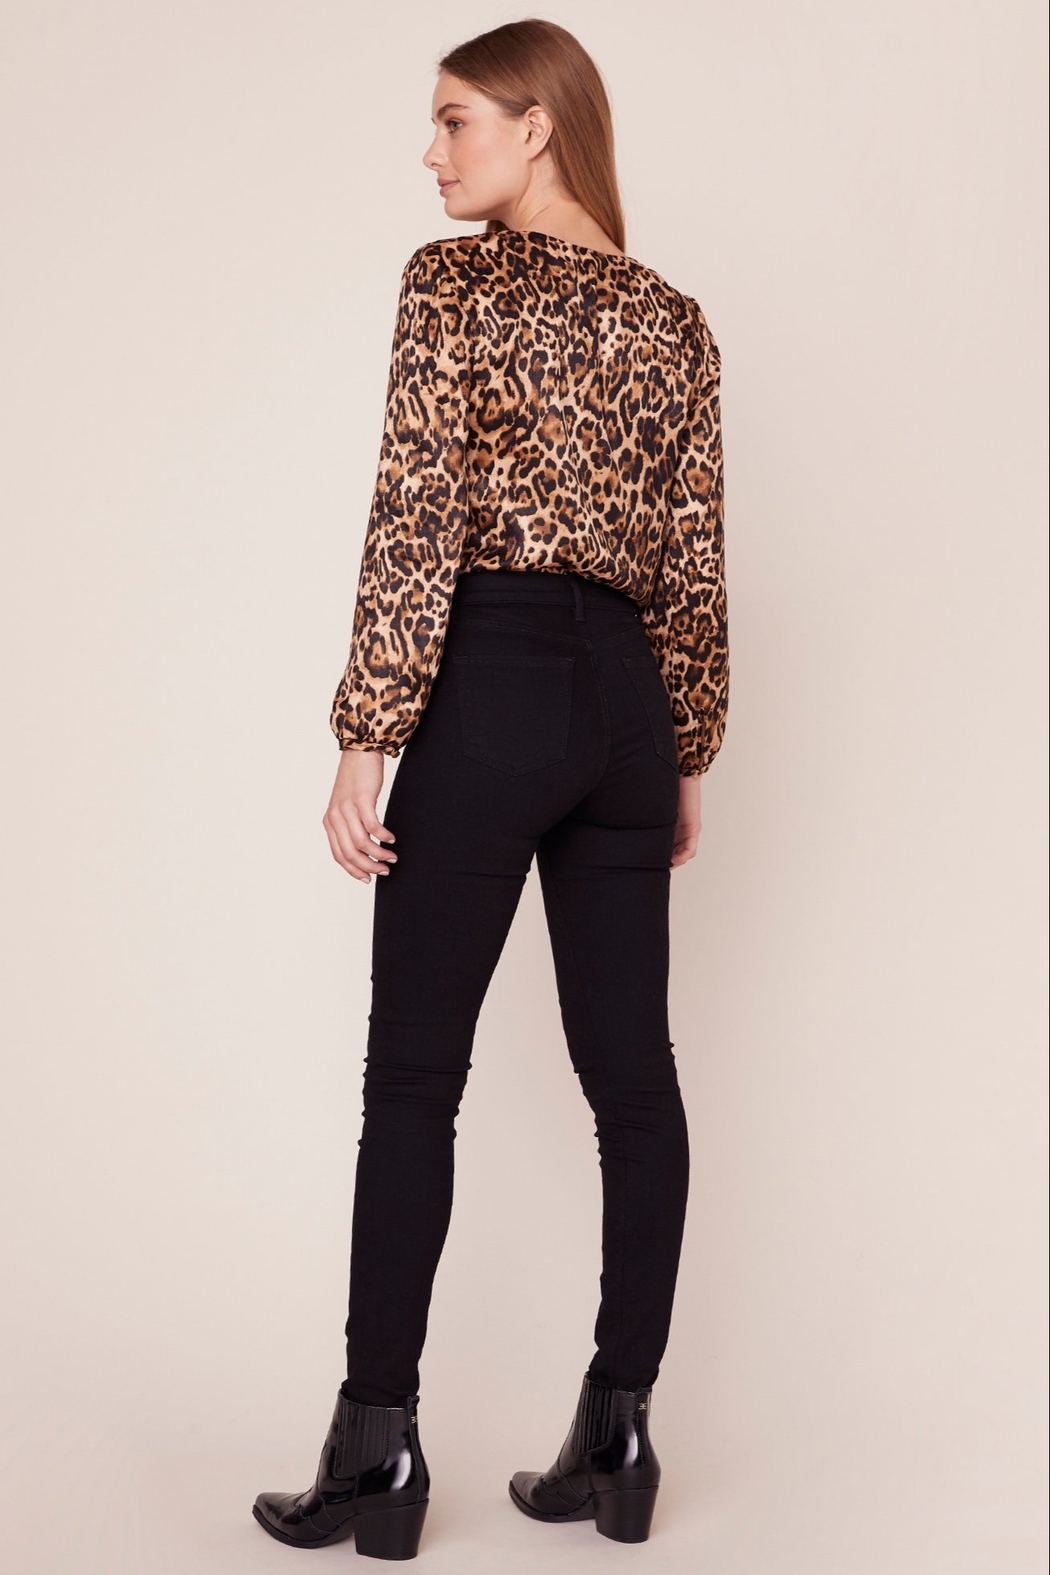 BB Dakota Leopard Bodysuit - Front Full Image